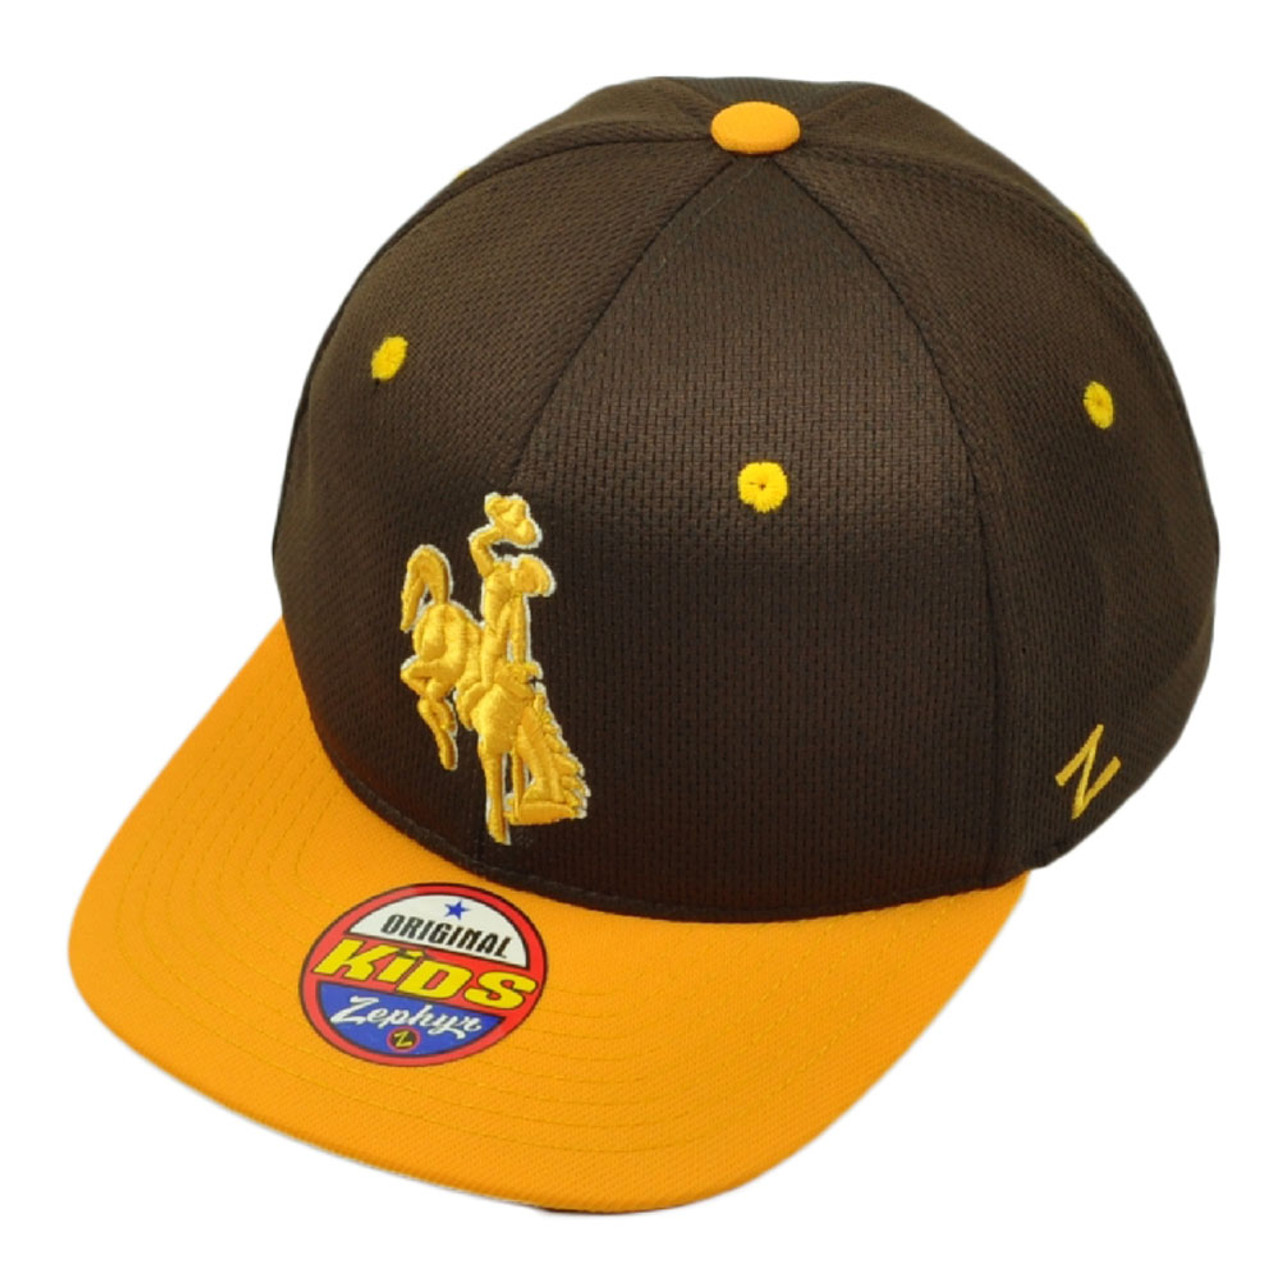 NCAA Zephyr Wyoming Cowboys Kids Youth Flat Bill Snapback Hat Cap Brown  Yellow